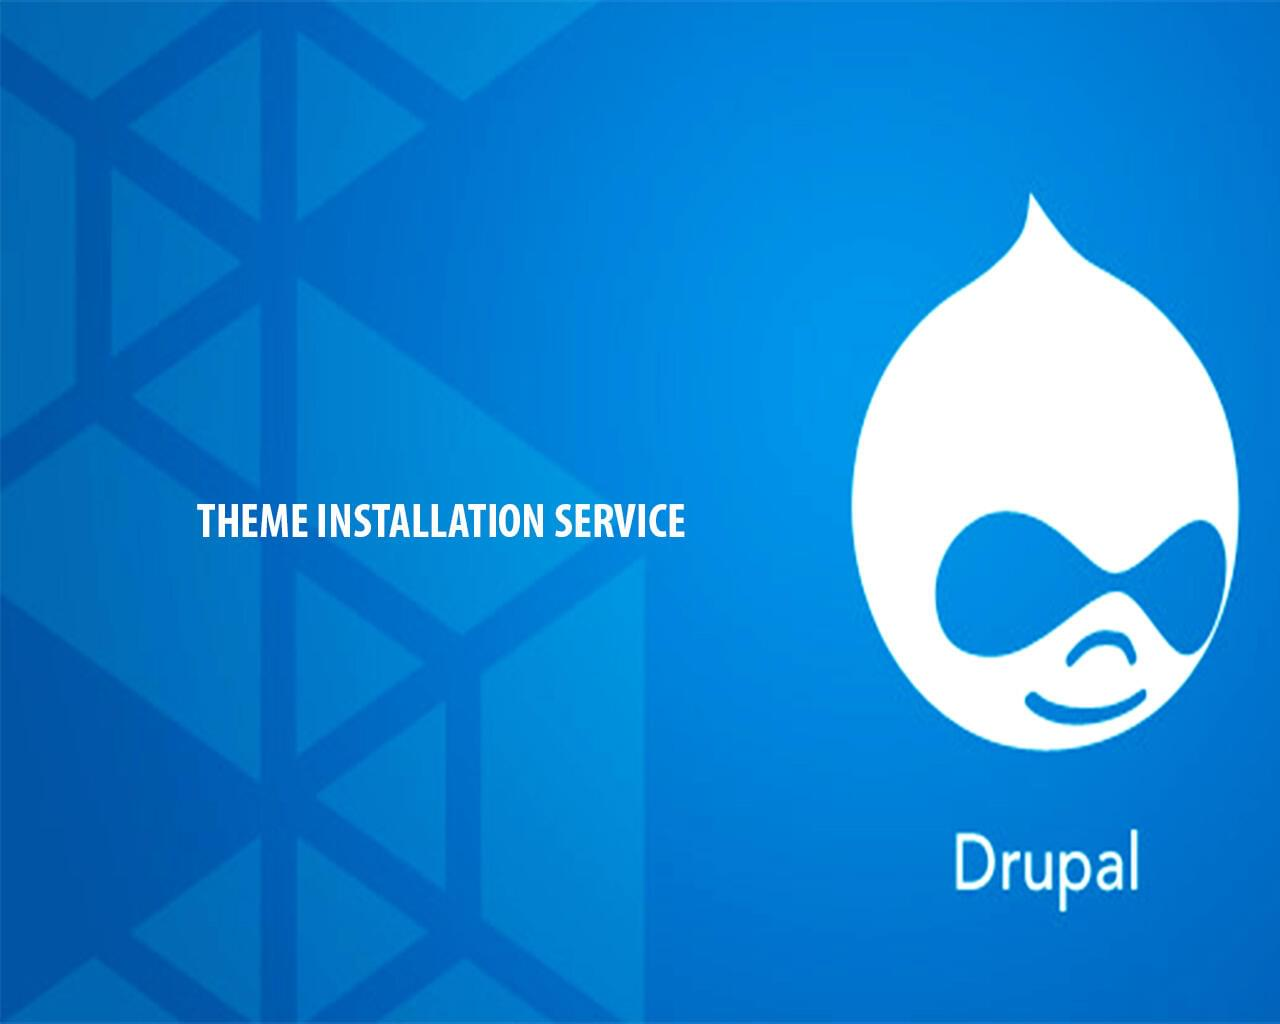 Express Drupal Installation by CoralixThemes - 117732